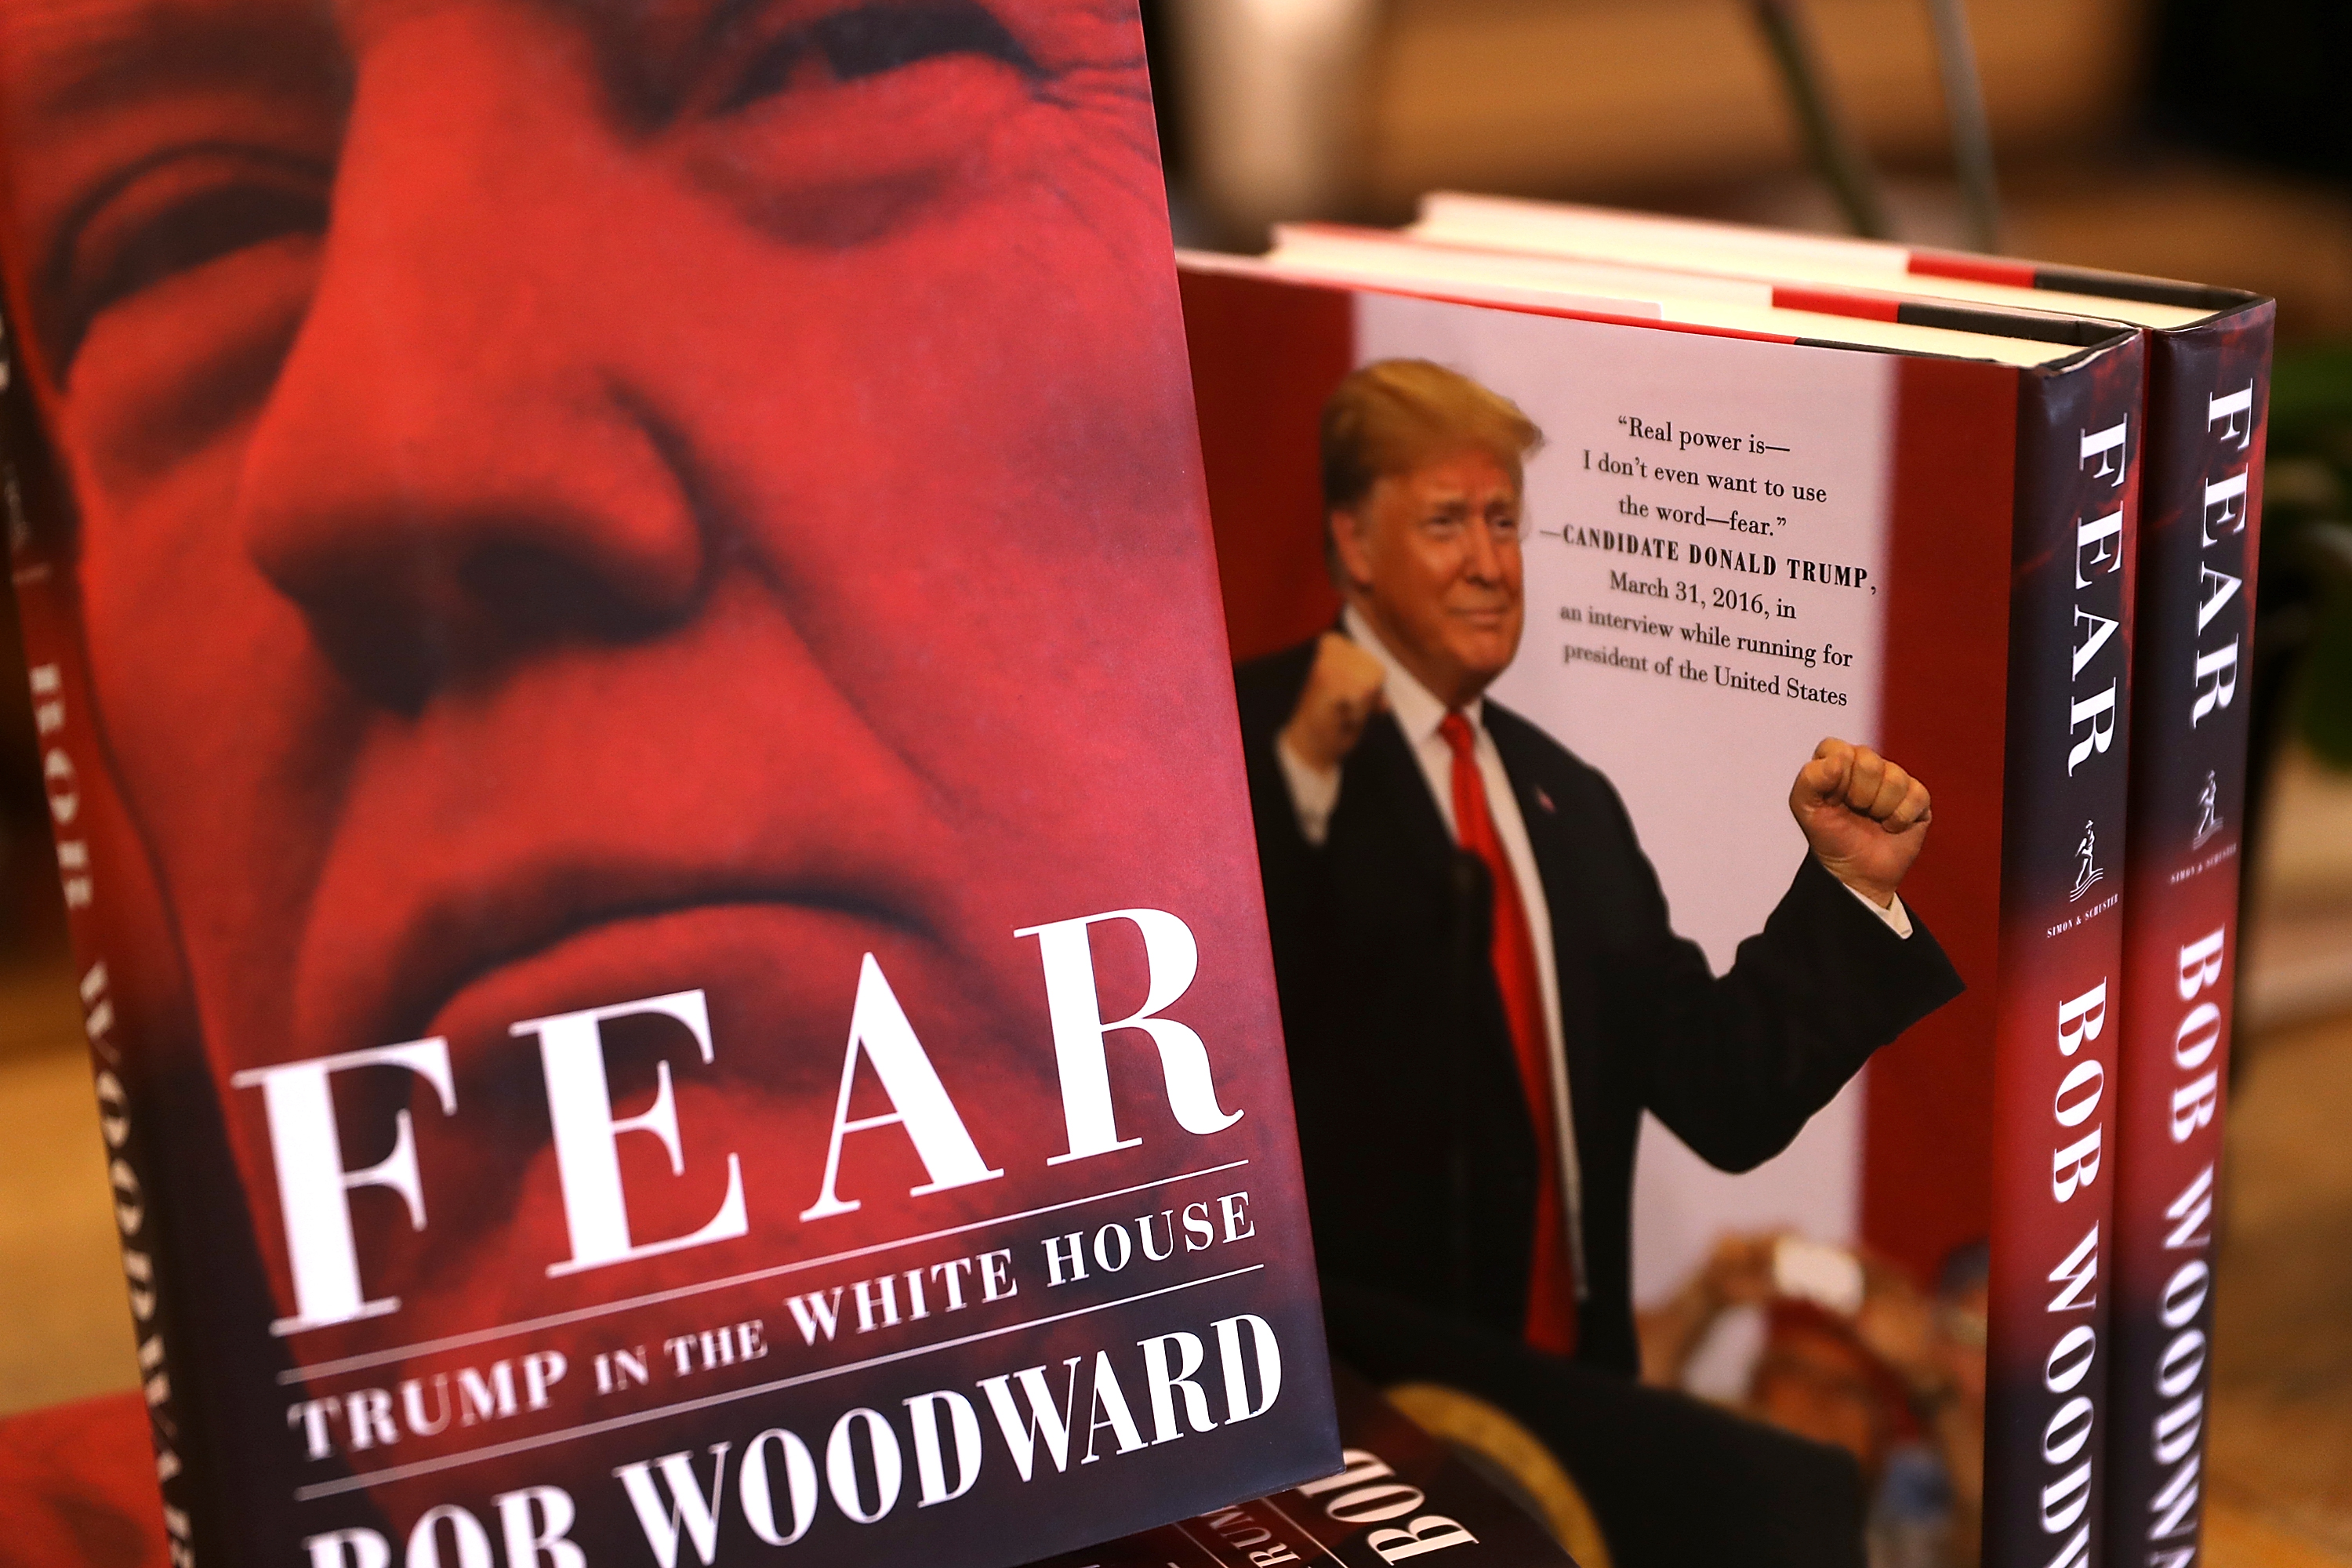 The newly released book  Fear  by Bob Woodward sold more than 750,000 copies in its first day